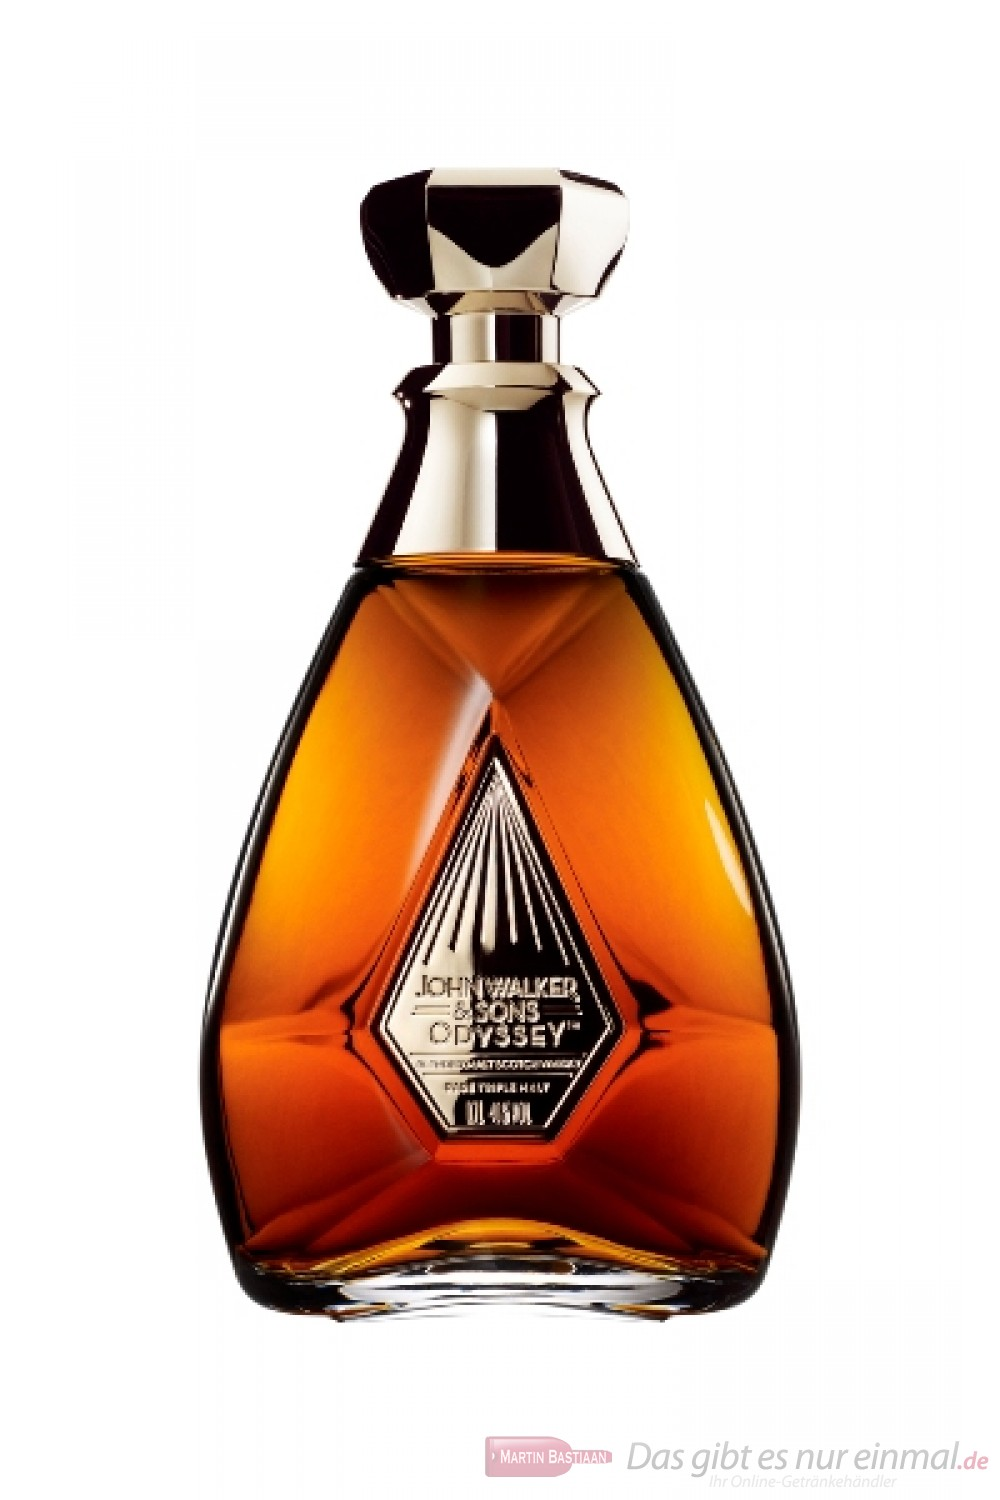 Johnnie Walker John Walker & Sons Odyssey 2013